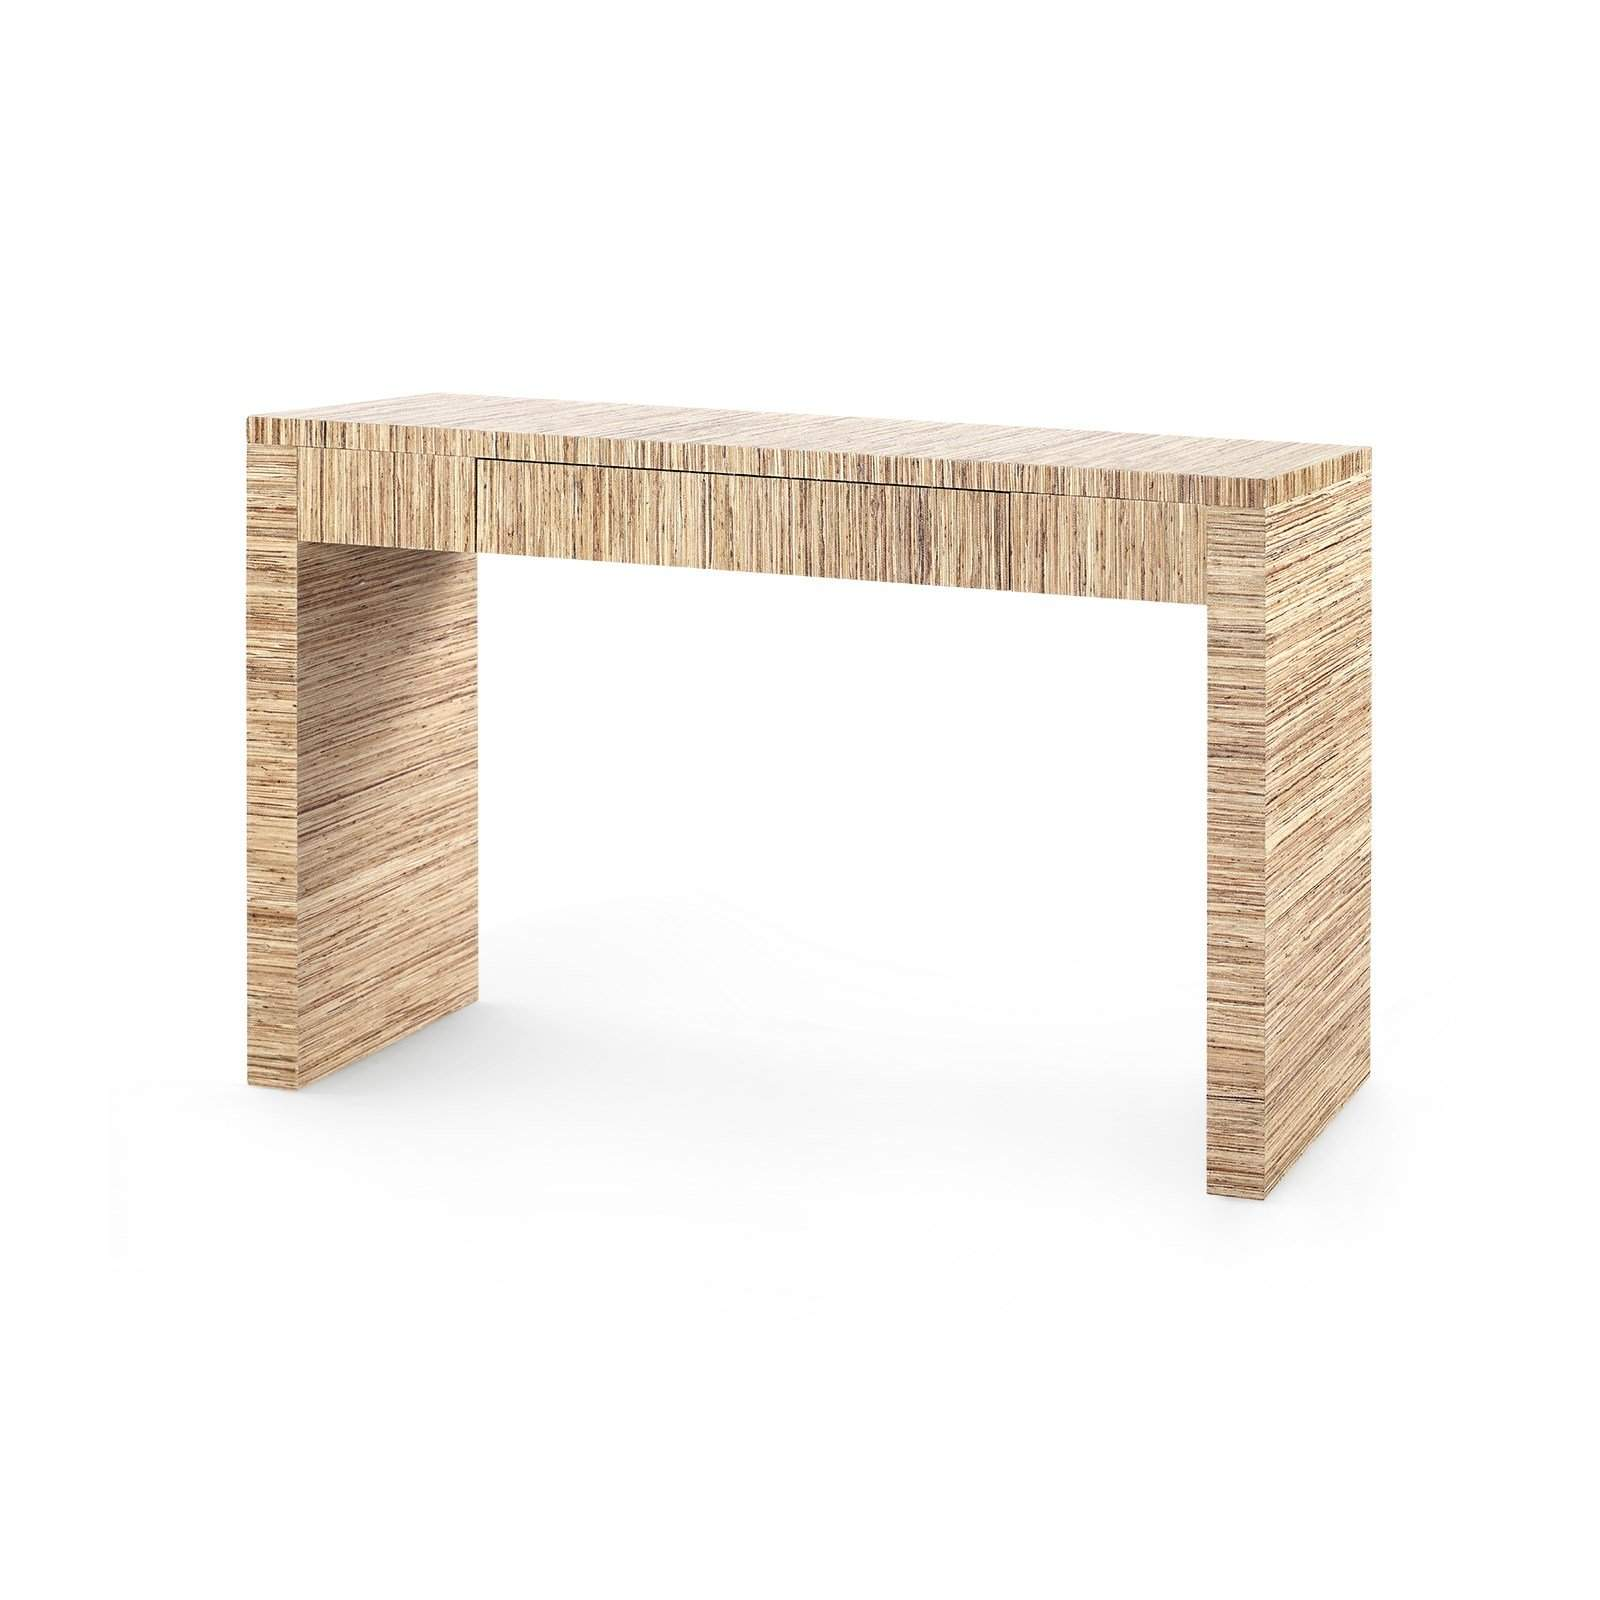 Bungalow 5 - MORGAN PAPYRUS CONSOLE TABLE in NATURAL-Bungalow 5-Blue Hand Home